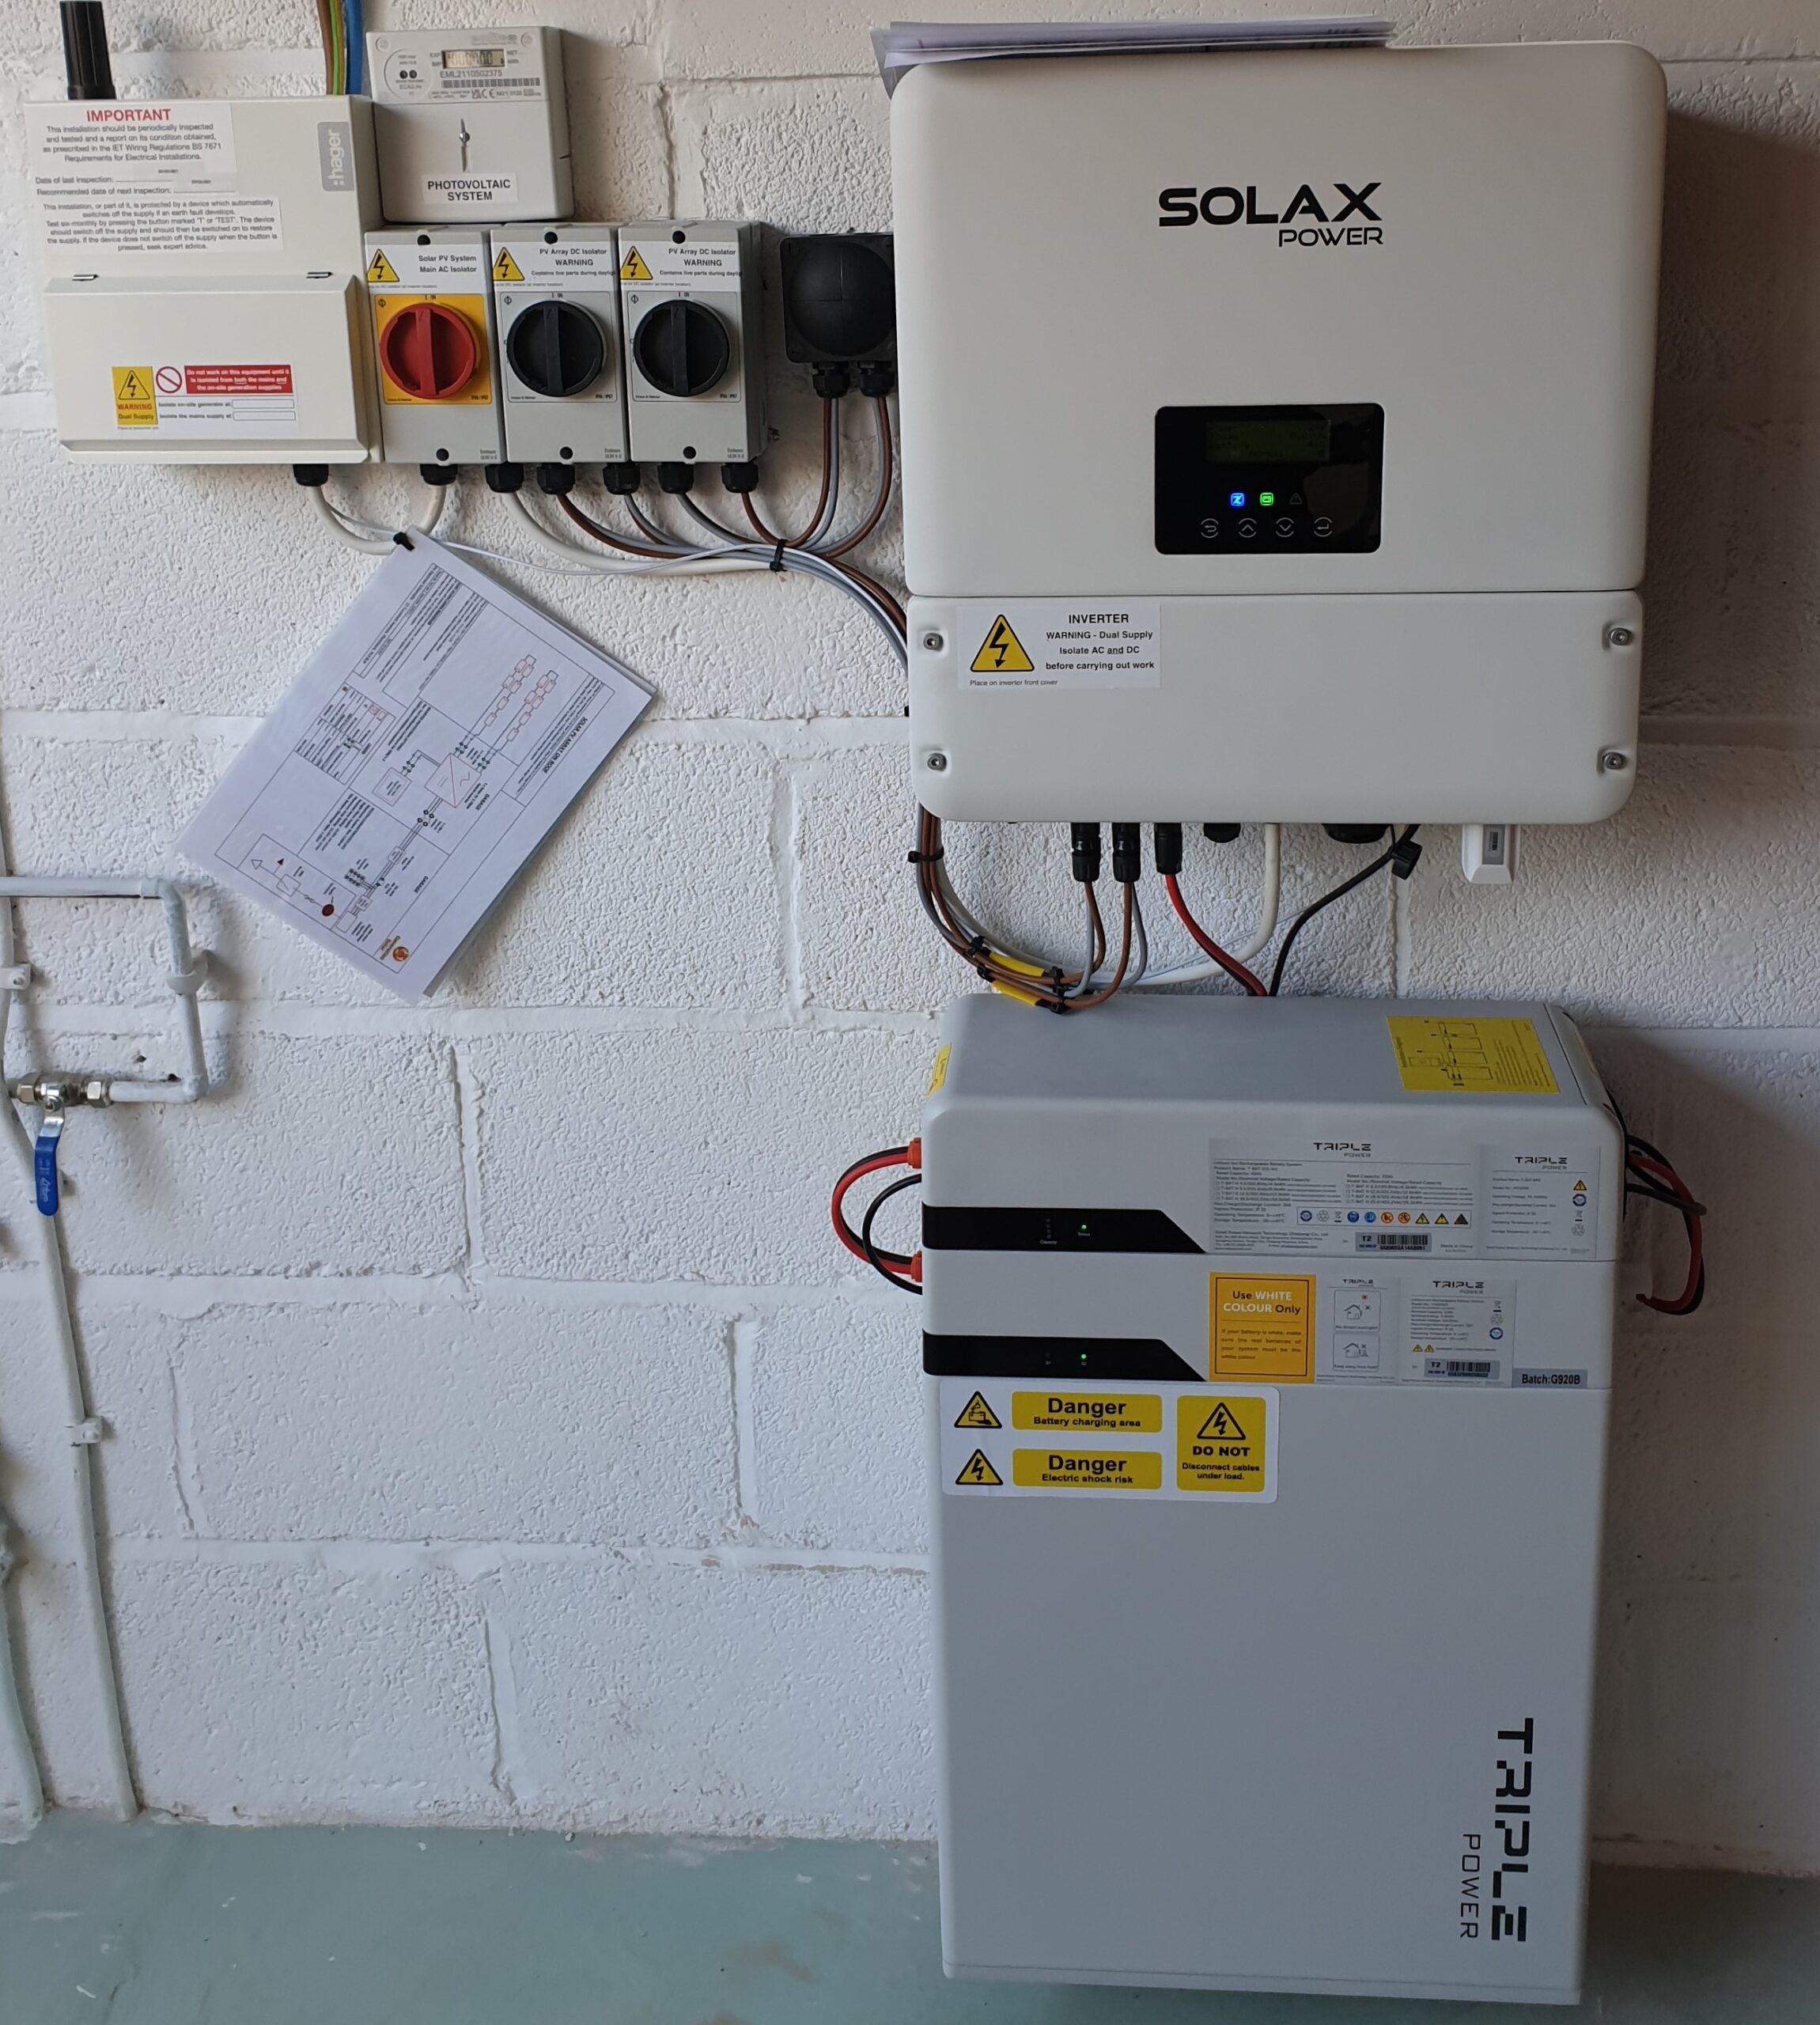 Solax hybrid inverter with 1 6.3kWh batteries